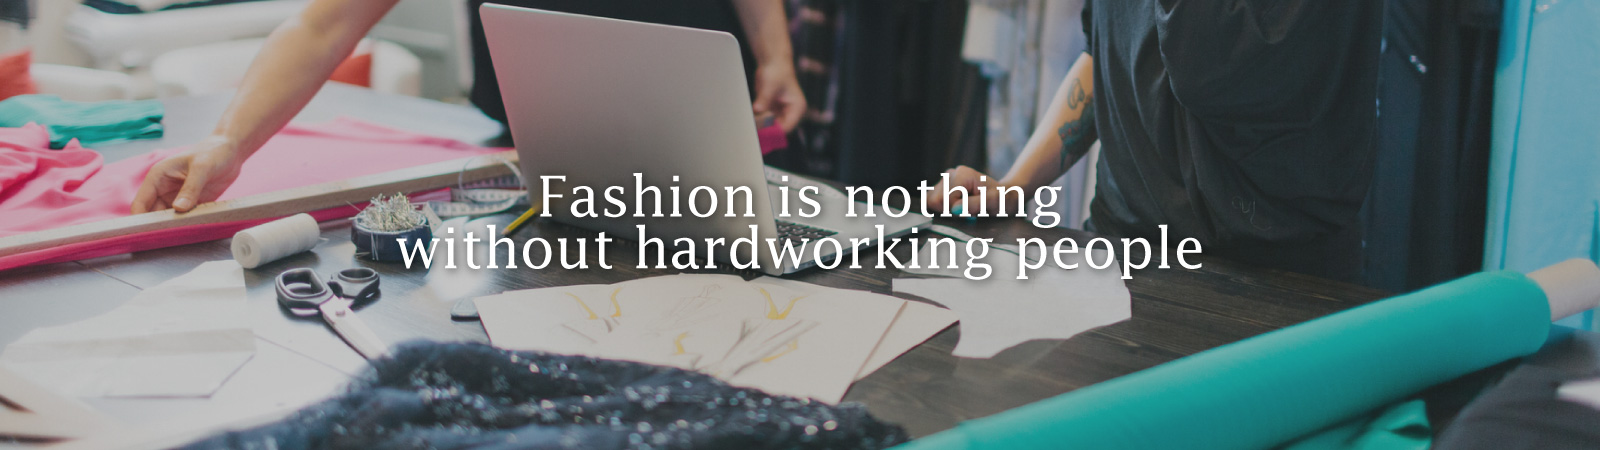 Fashion is nothing without hardworking people